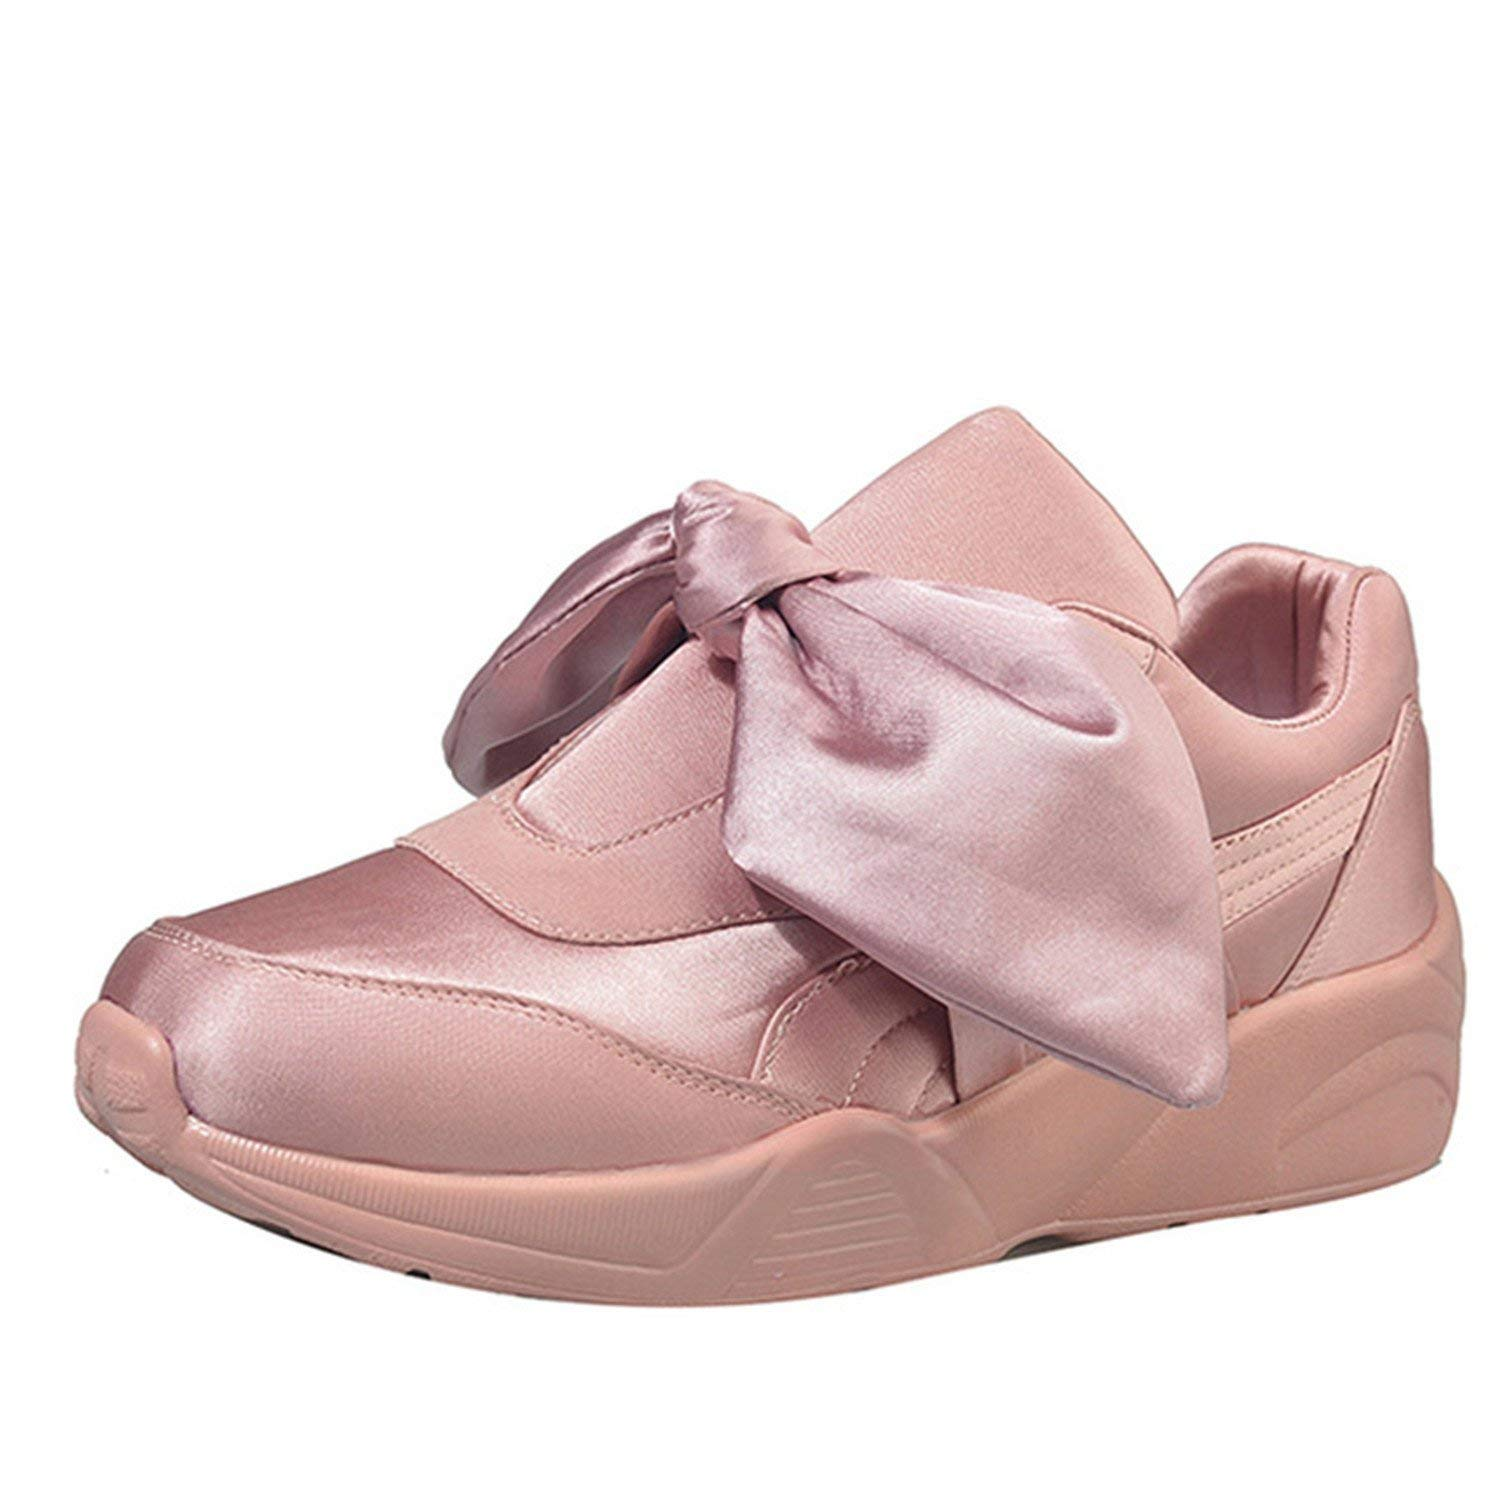 9190525e5145 Get Quotations · Feilongzaitianba Spring Shoes Women Silk Bow Tie Ribbon  Satin Flats Lace-Up Casual Shoes Pink